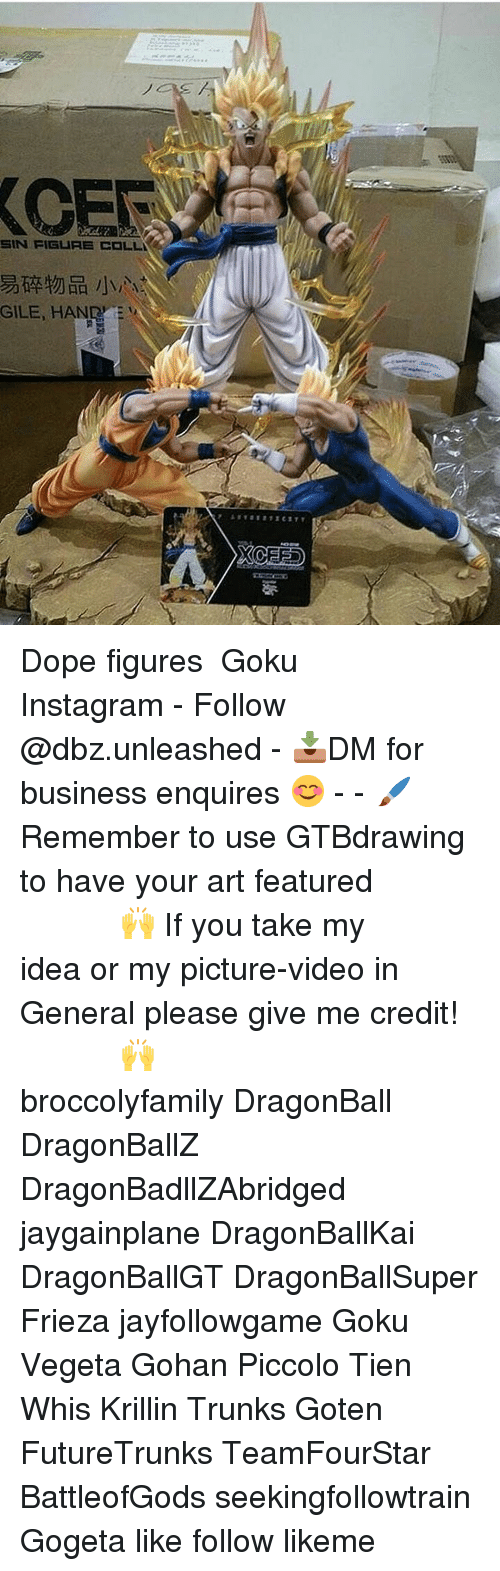 Dope, Dragonball, and Frieza: SIN FIGURE COLL  GILE, HANR  XCEED Dope figures ▂▂▂ ♕Goku♕ ▂▂▂ ⠀⠀⠀⠀⠀⠀⠀⠀⠀⠀ 『Instagram』 - Follow @dbz.unleashed - 📥DM for business enquires 😊 - - 🖌Remember to use GTBdrawing to have your art featured ⠀⠀───────⠀☾🙌☽⠀─────── If you take my idea or my picture-video in General please give me credit! ⠀⠀───────⠀☾🙌☽⠀─────── □■■■■■■■■■■■■■■■■□ broccolyfamily DragonBall DragonBallZ DragonBadllZAbridged jaygainplane DragonBallKai DragonBallGT DragonBallSuper Frieza jayfollowgame Goku Vegeta Gohan Piccolo Tien Whis Krillin Trunks Goten FutureTrunks TeamFourStar BattleofGods seekingfollowtrain Gogeta like follow likeme